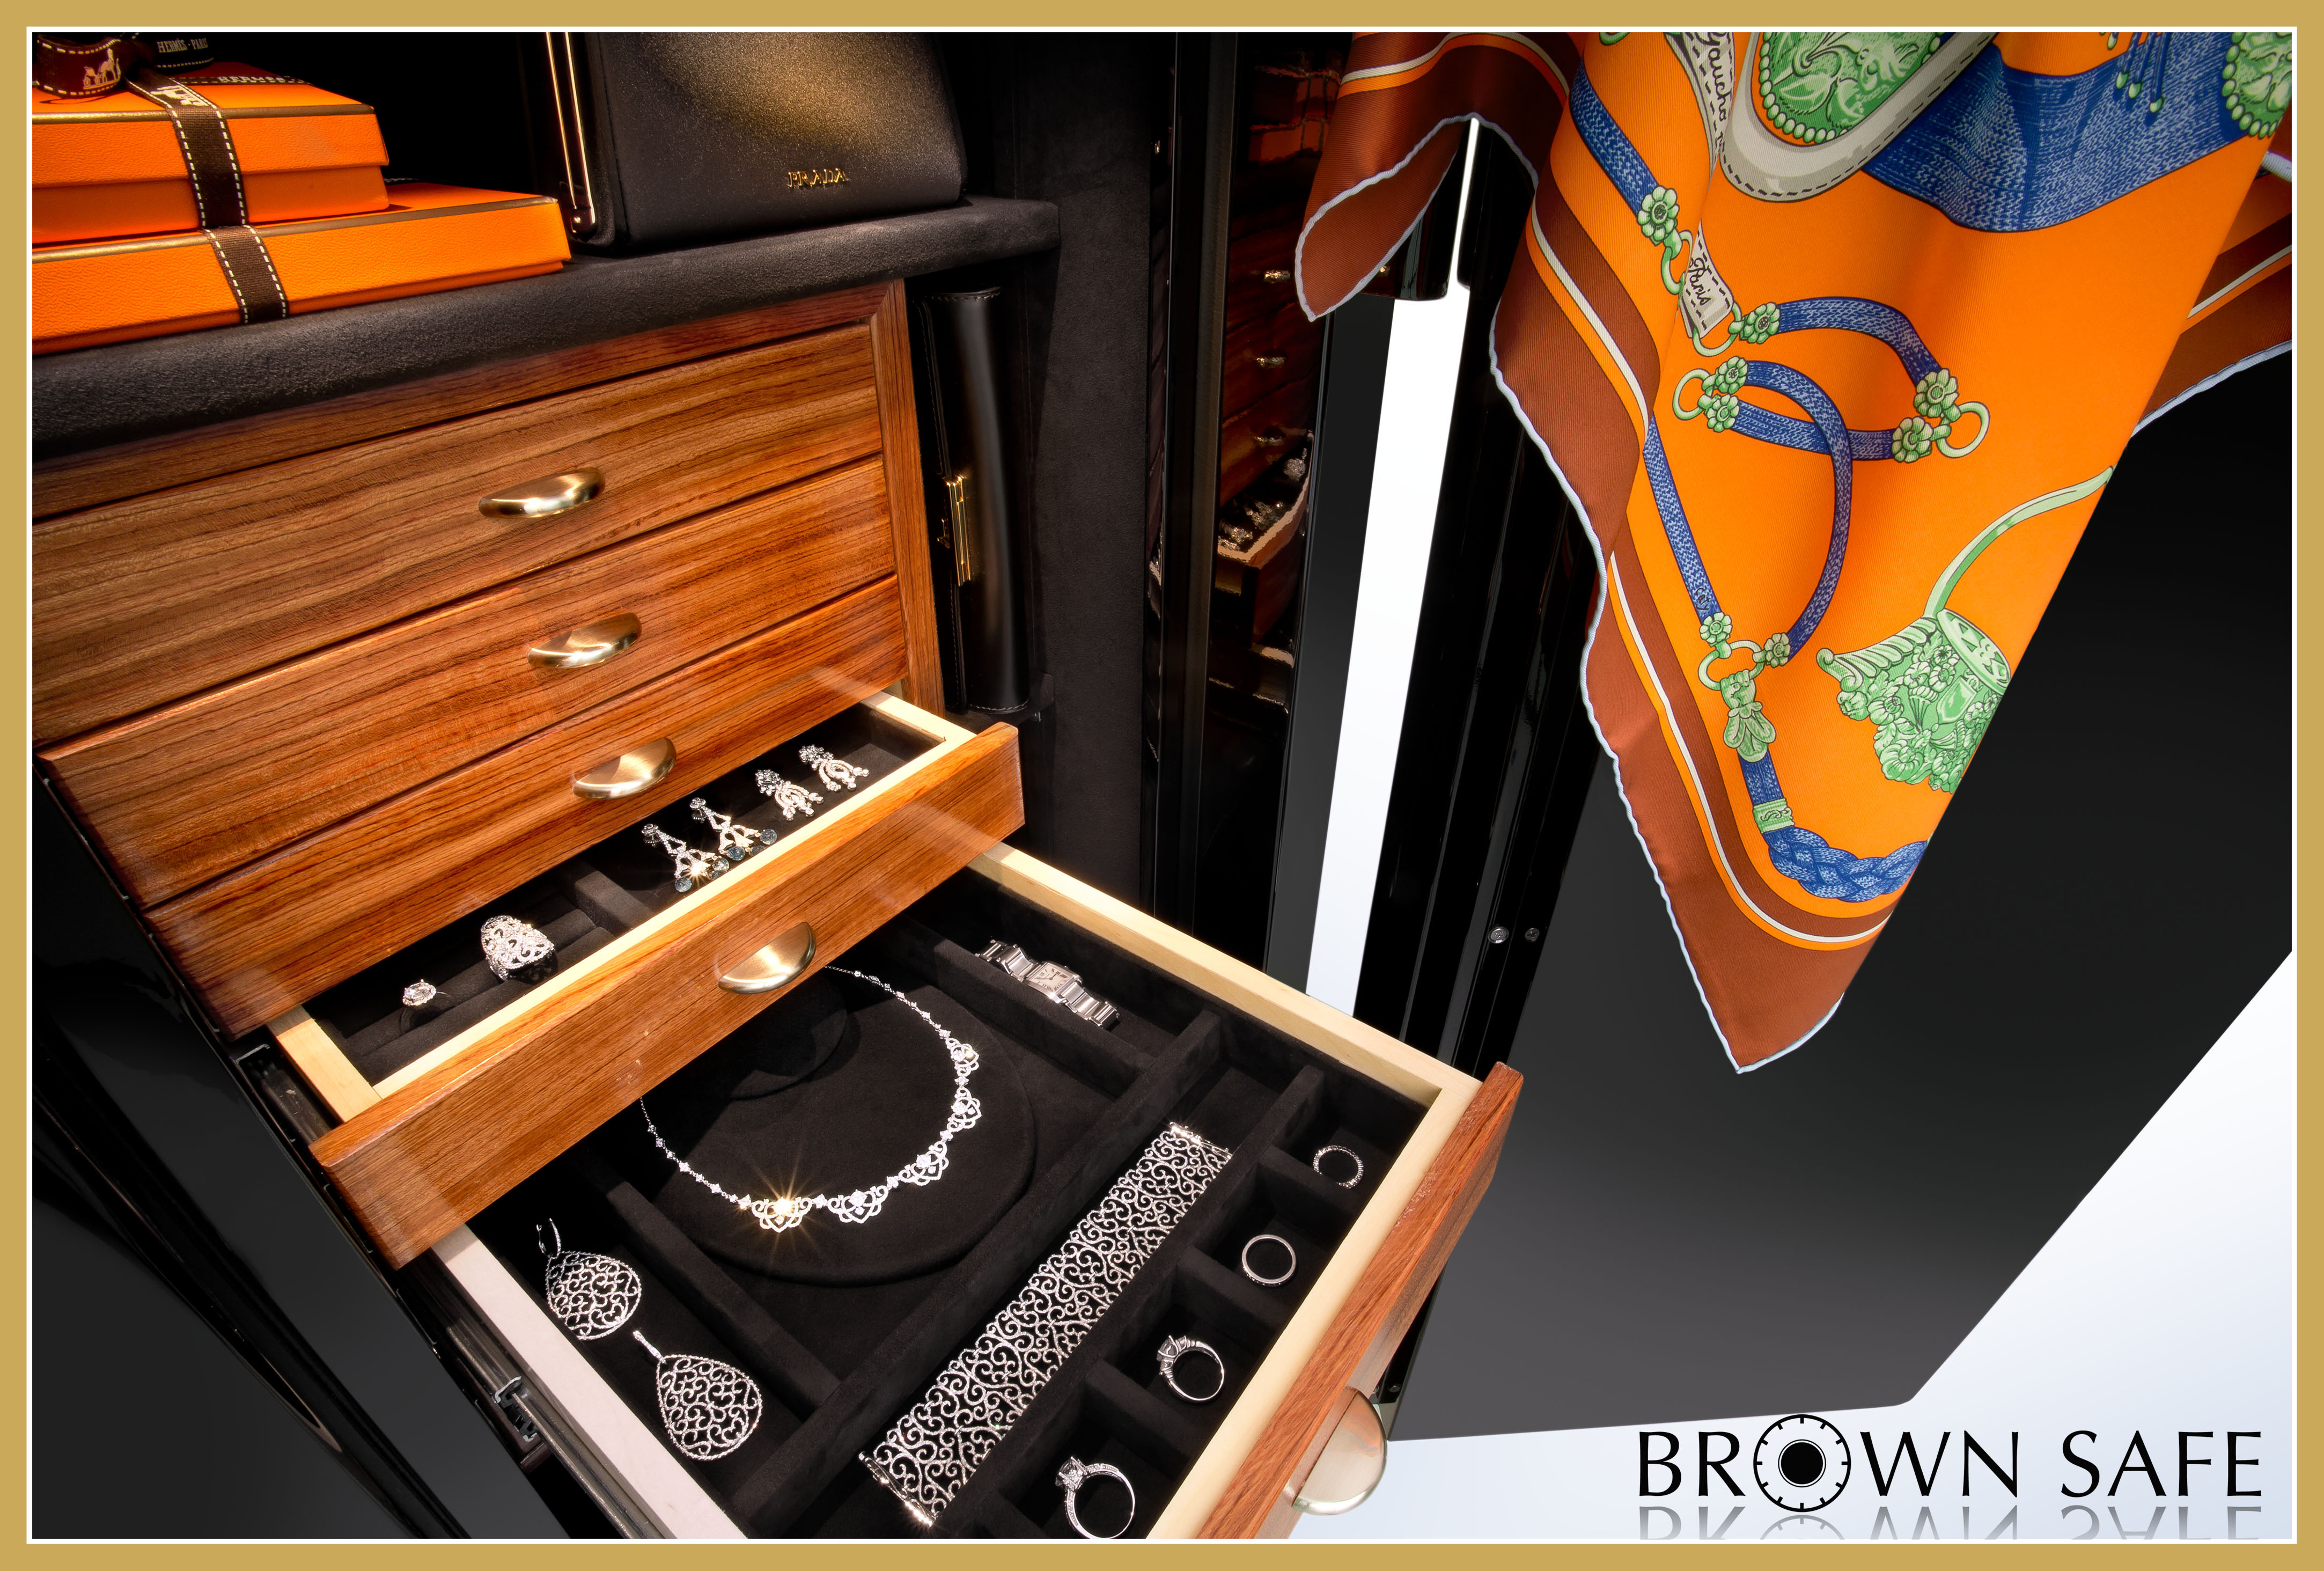 Small Jewelry Safes For Home – Billy Knight